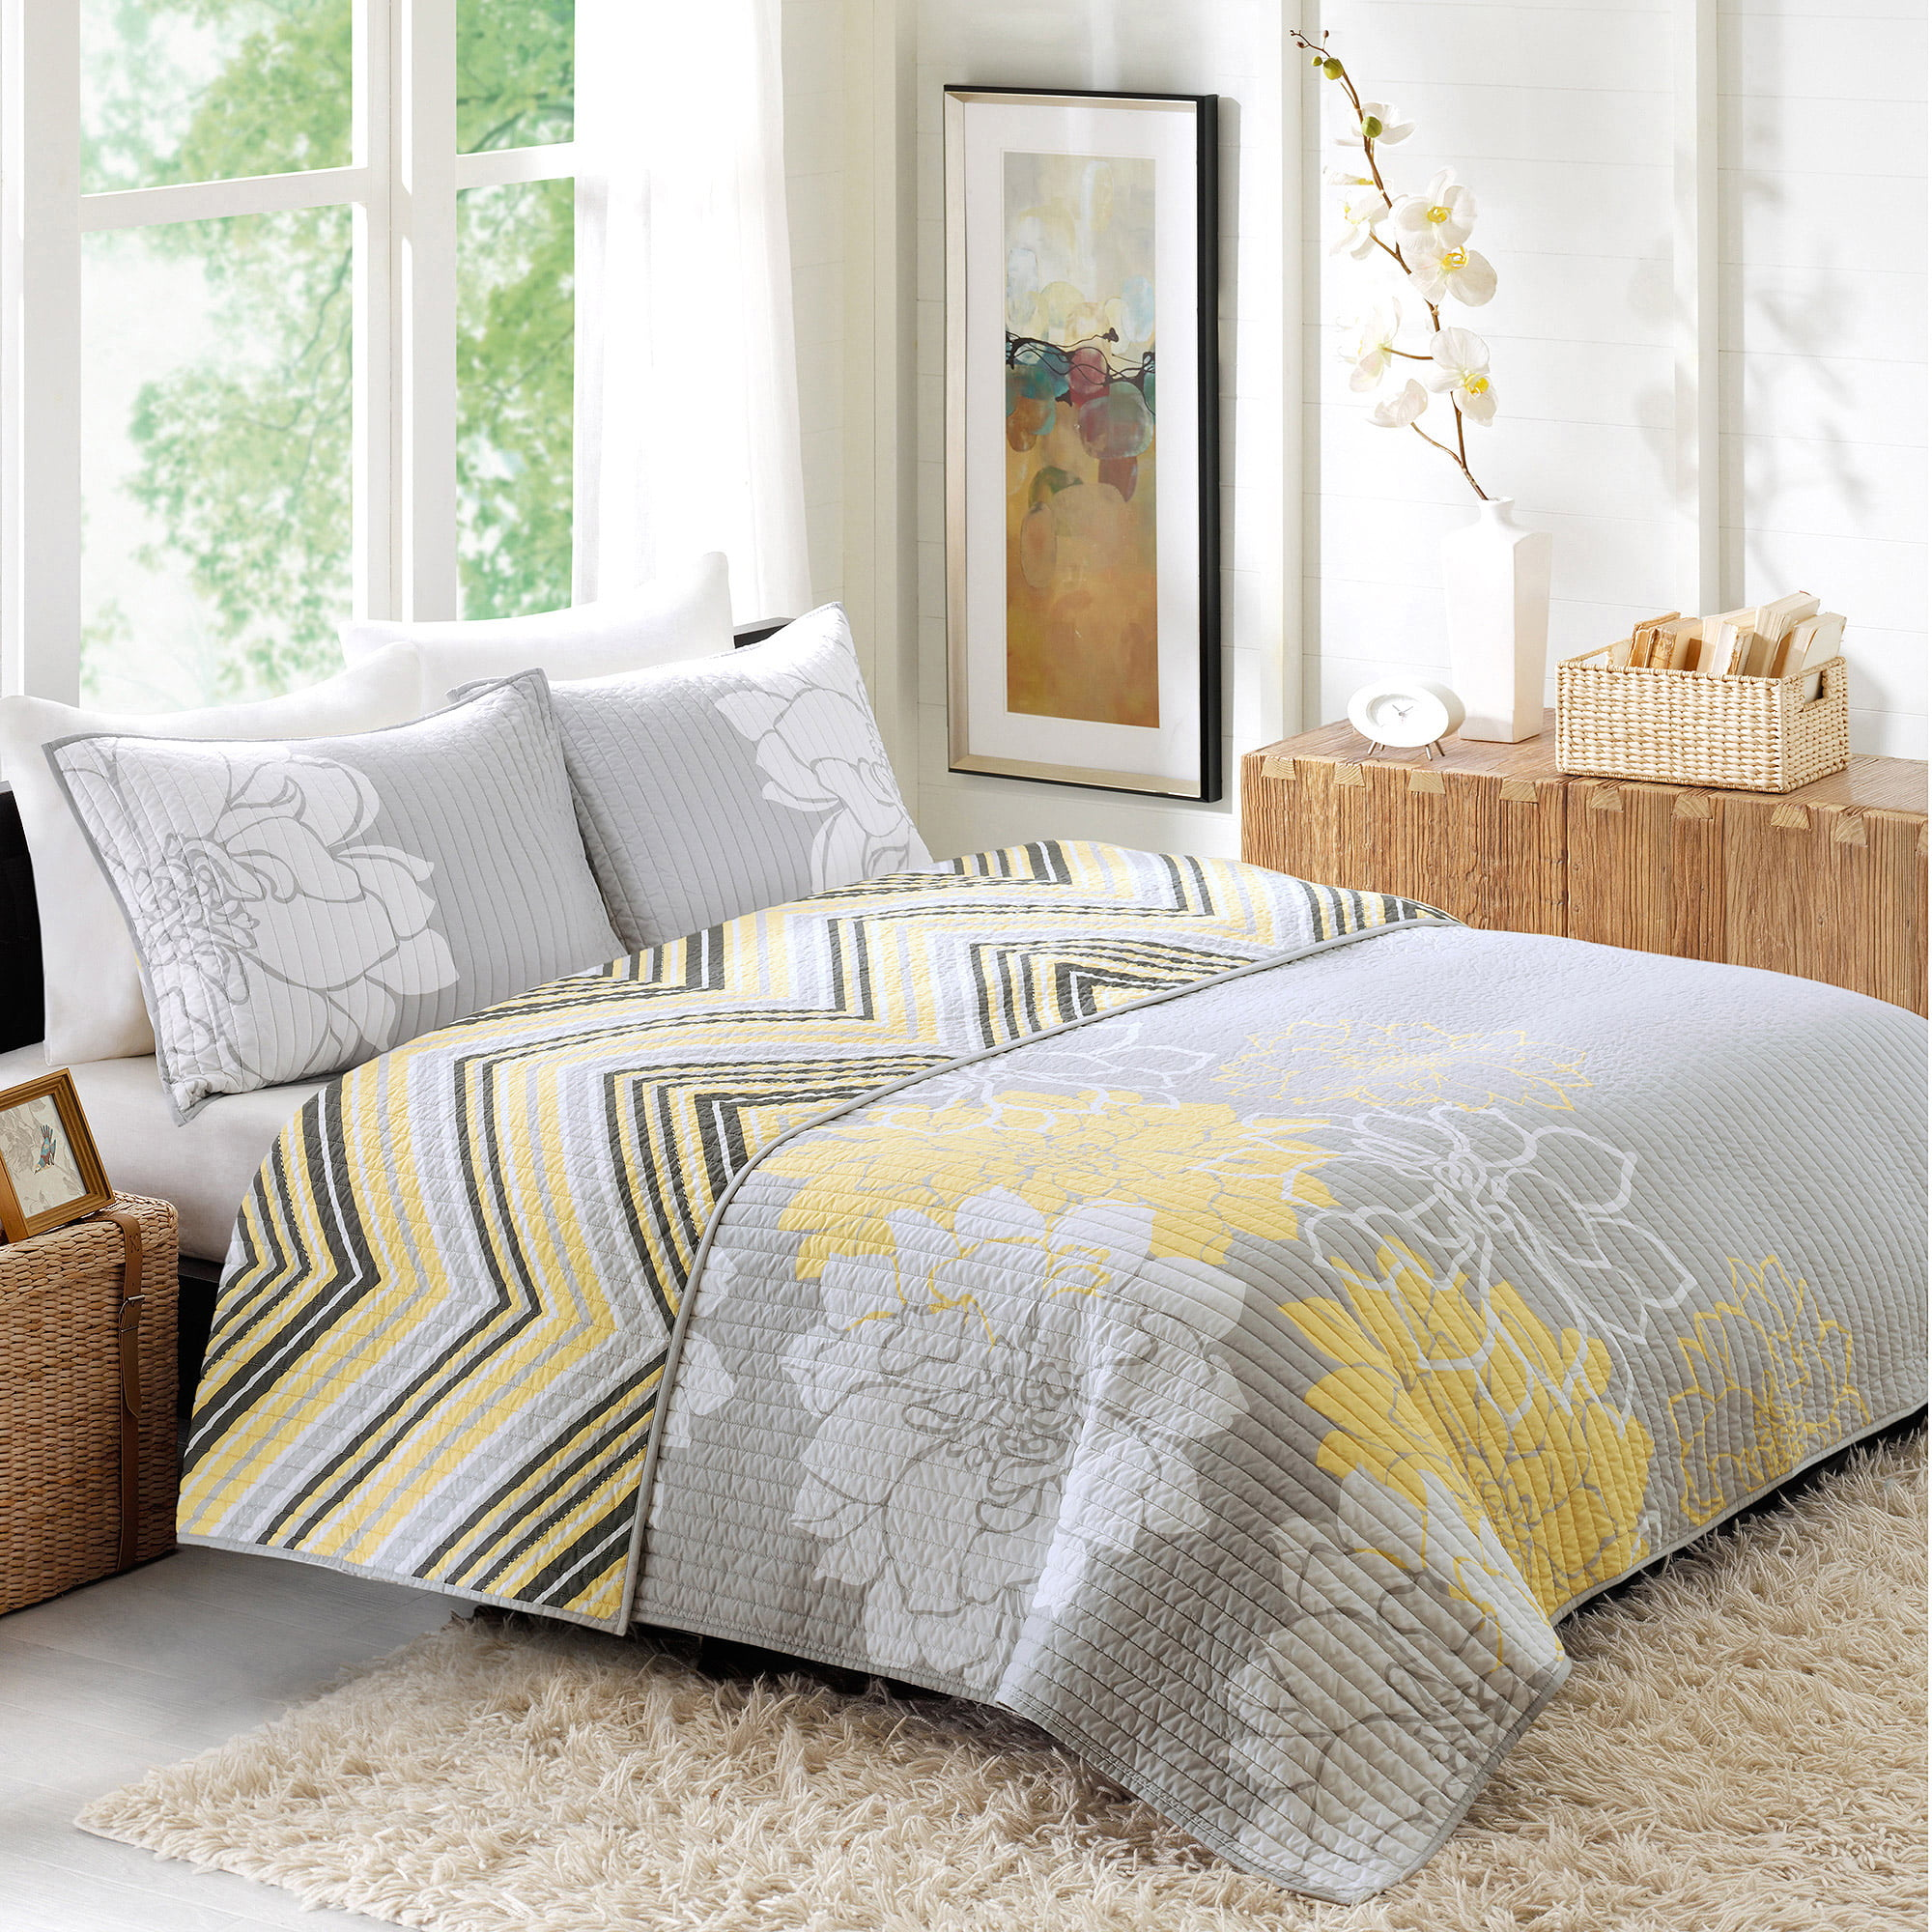 Better Homes and Gardens Quilt Collection Yellow Floral Walmartcom